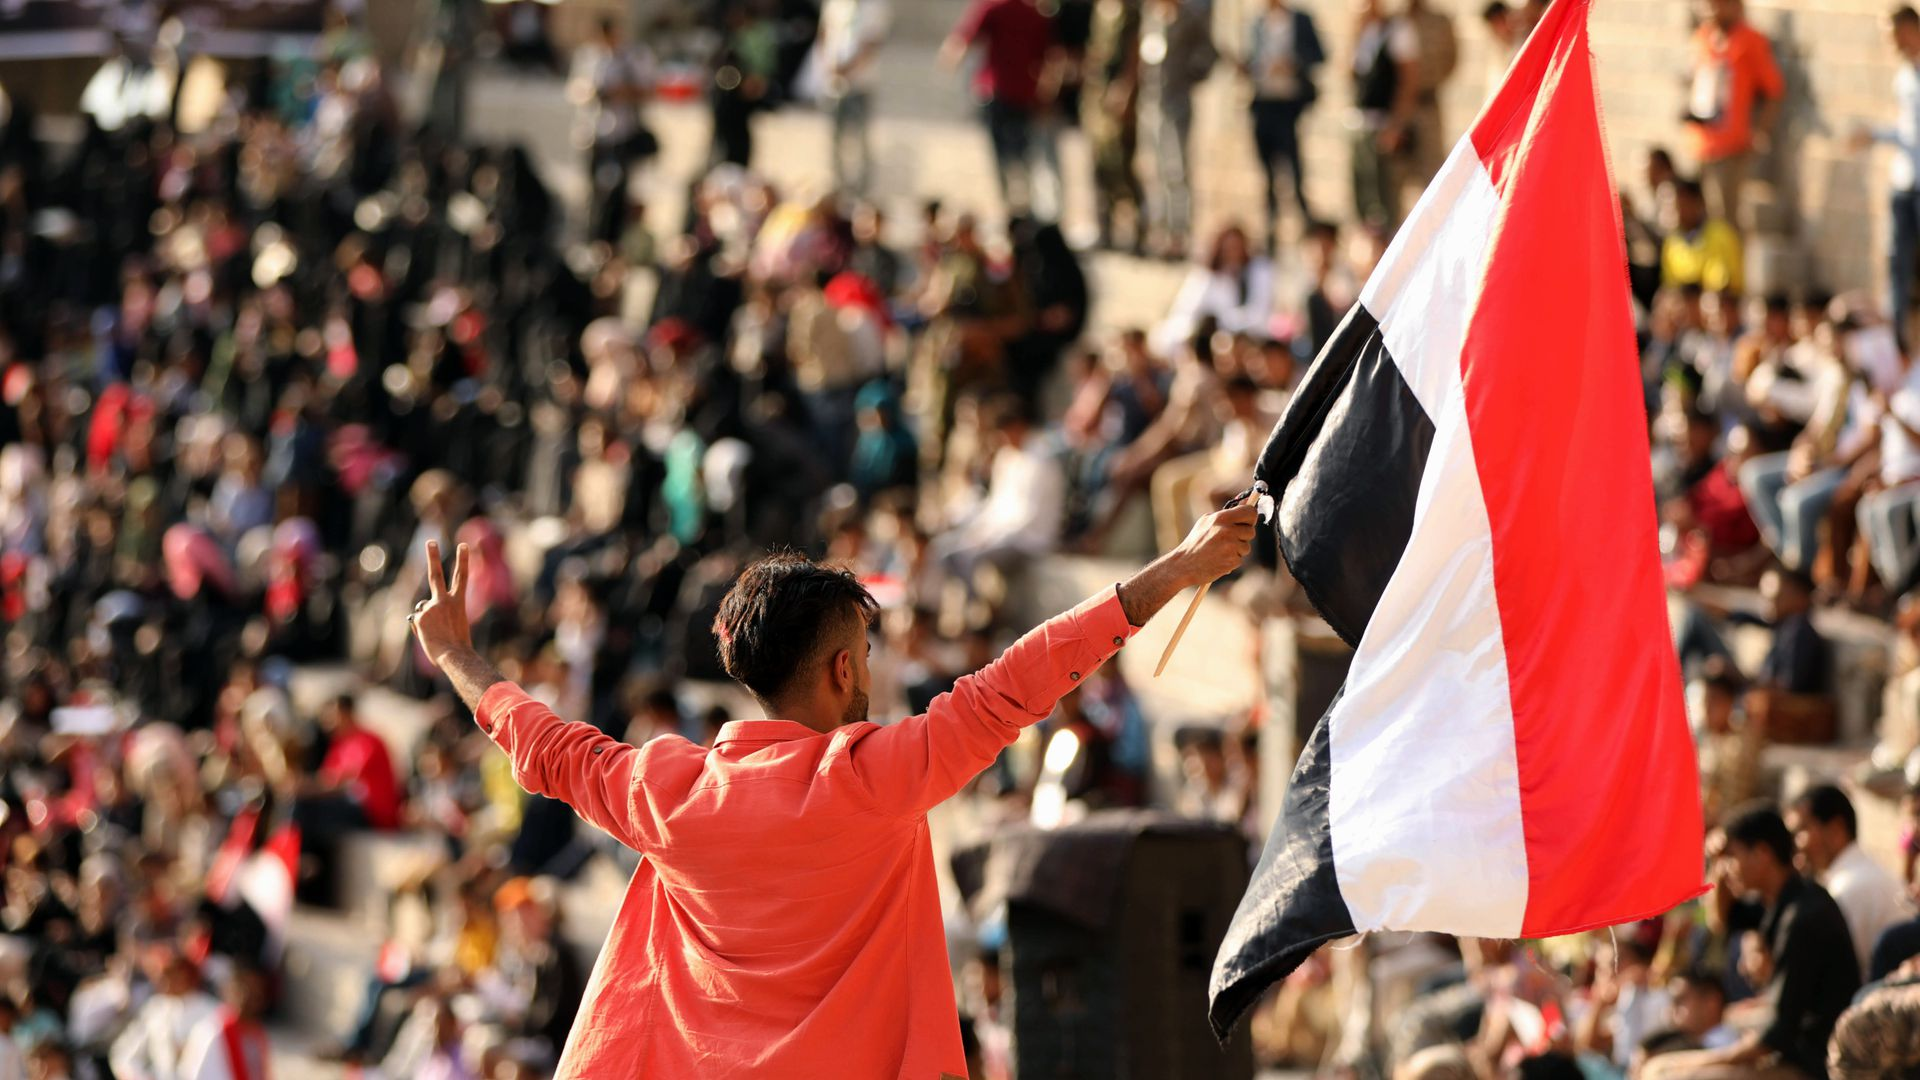 A young person waves a Yemen flag in front of a crowd.